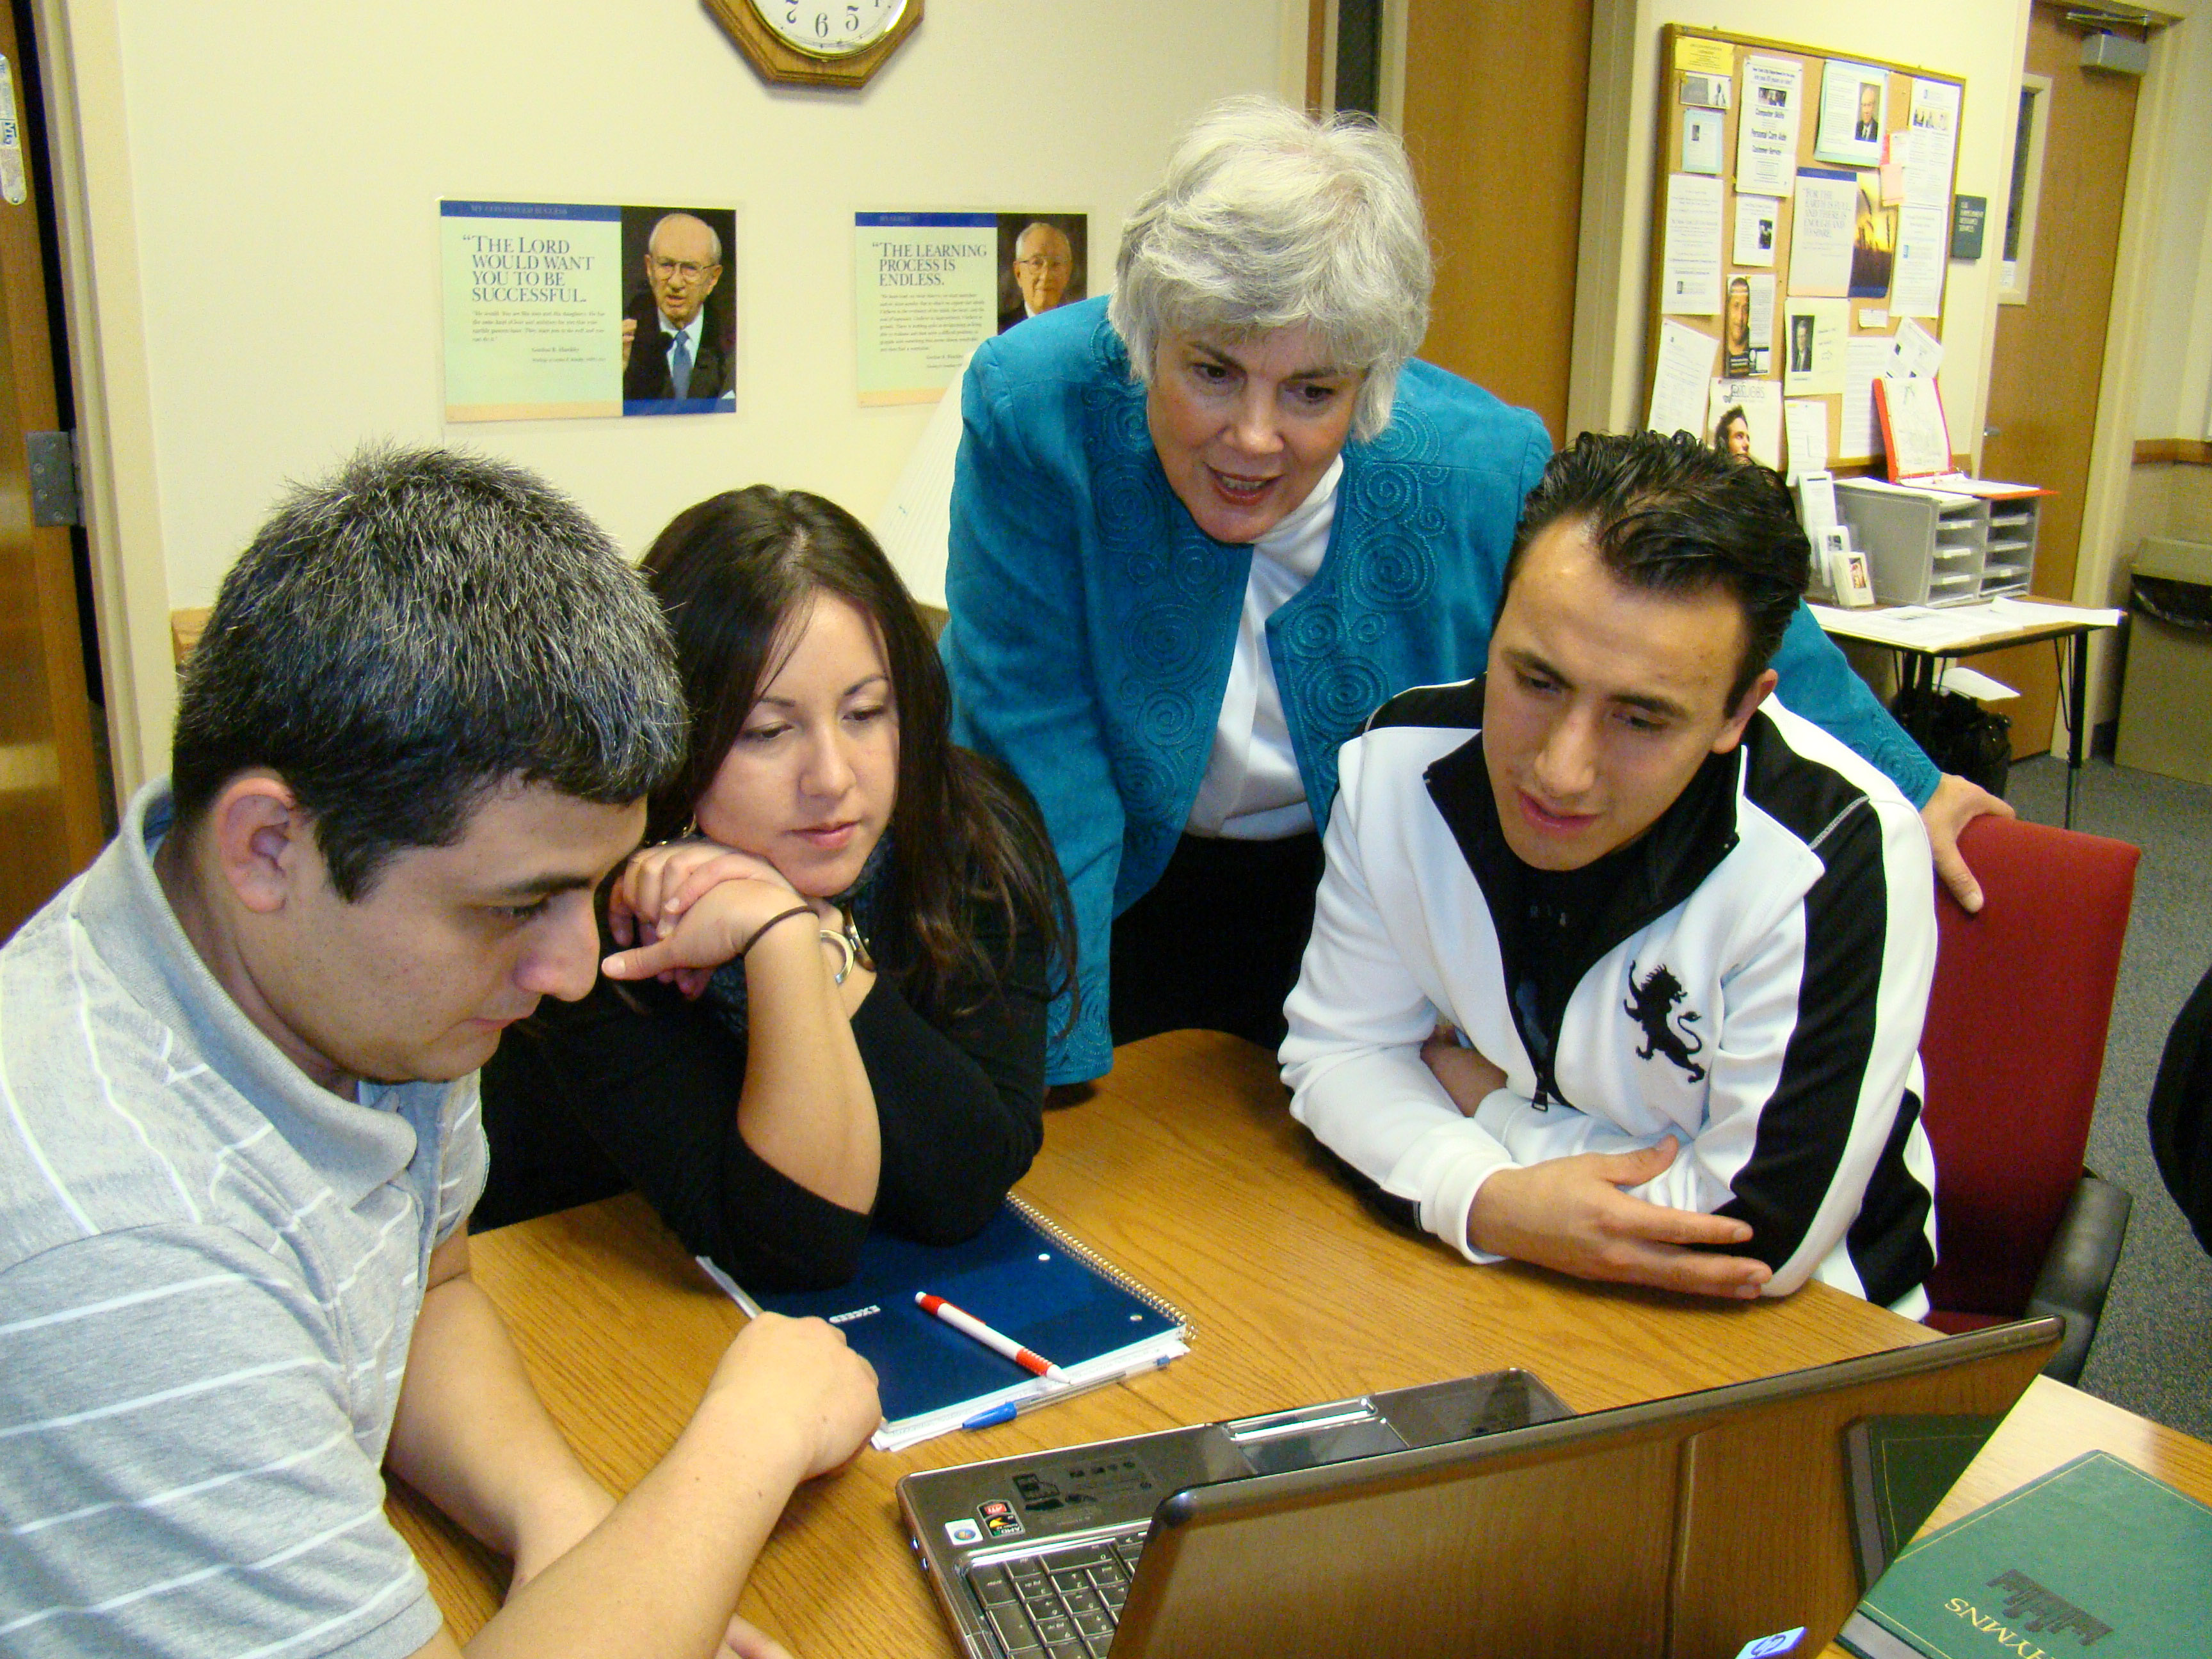 Pathway online learning program is being conducted at a New York institute building. All young returning missionaries are now preapproved for BYU-Pathway Worldwide.